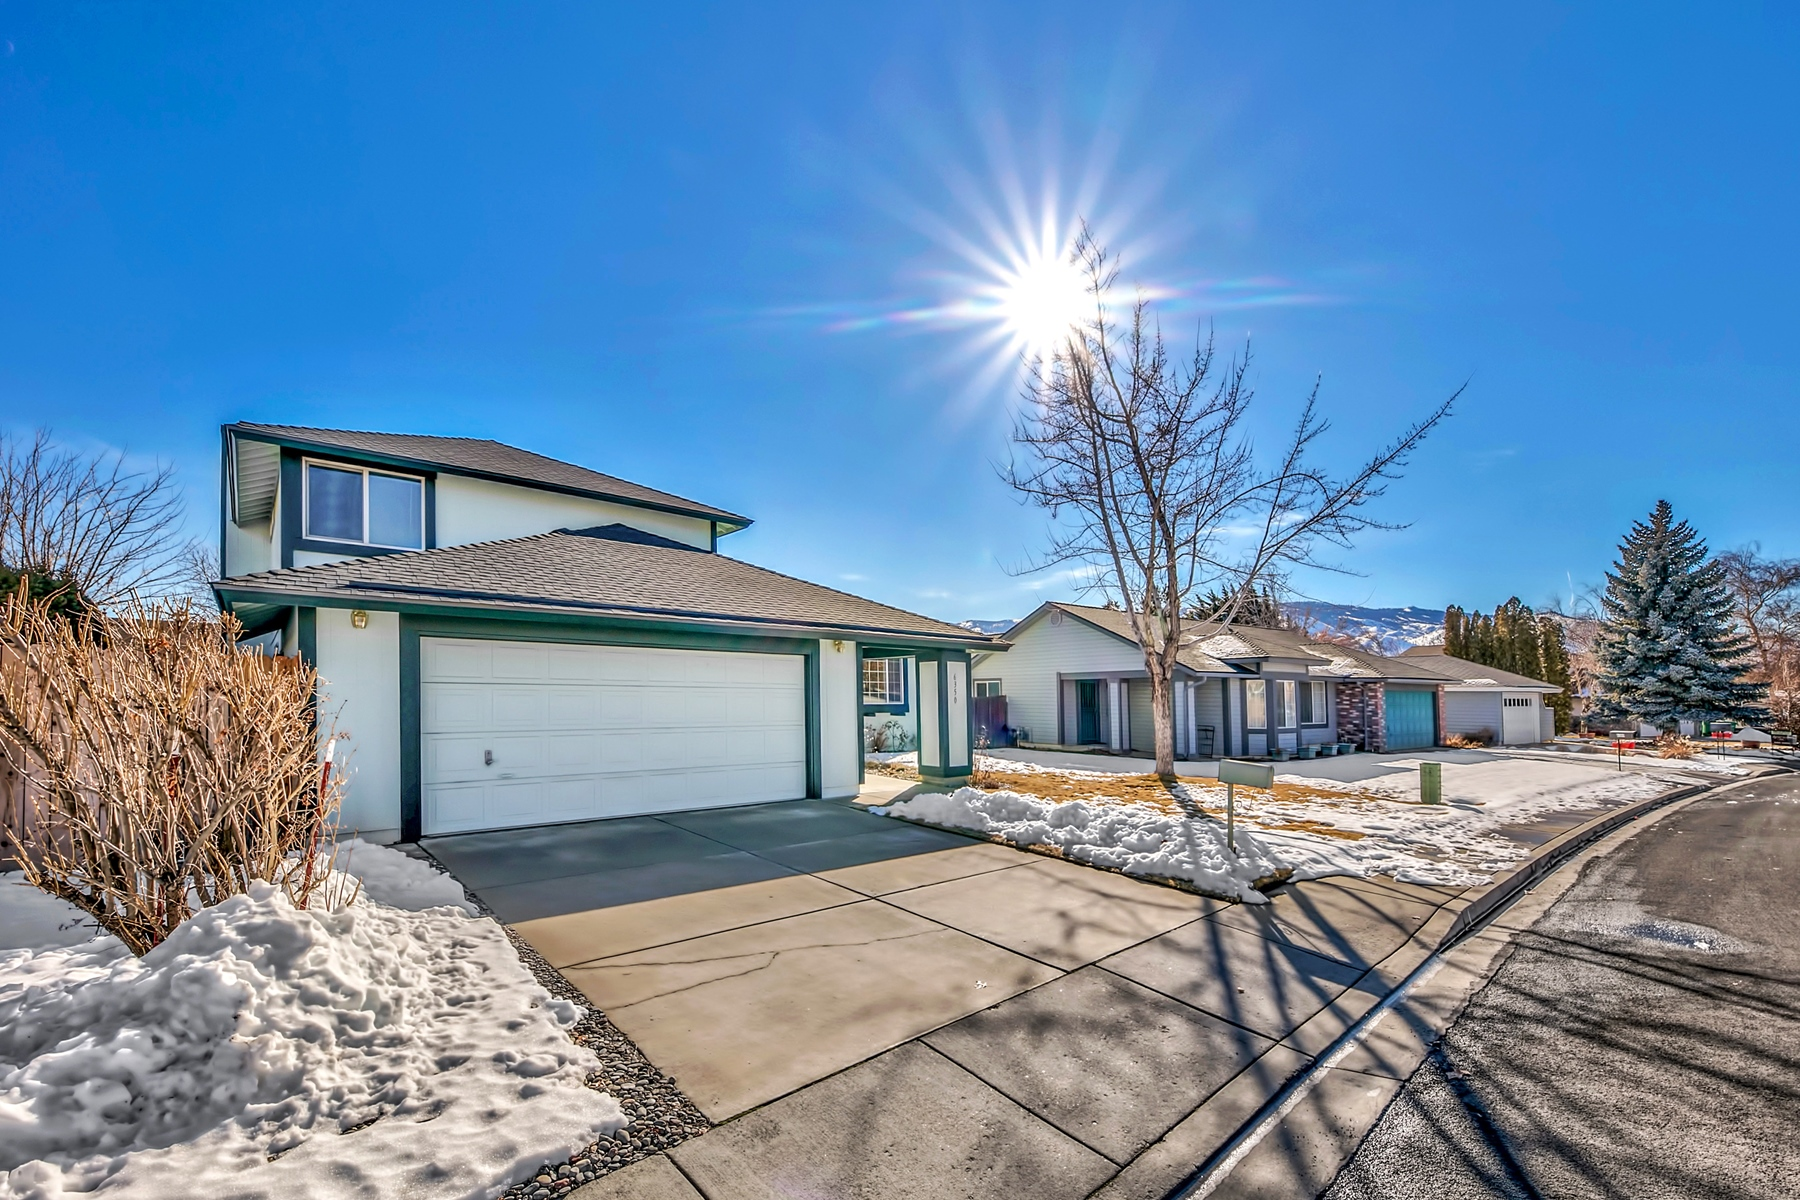 Property for Active at 6350 Fairhaven Place, Reno, Nevada 89523 6350 Fairhaven Place Reno, Nevada 89523 United States